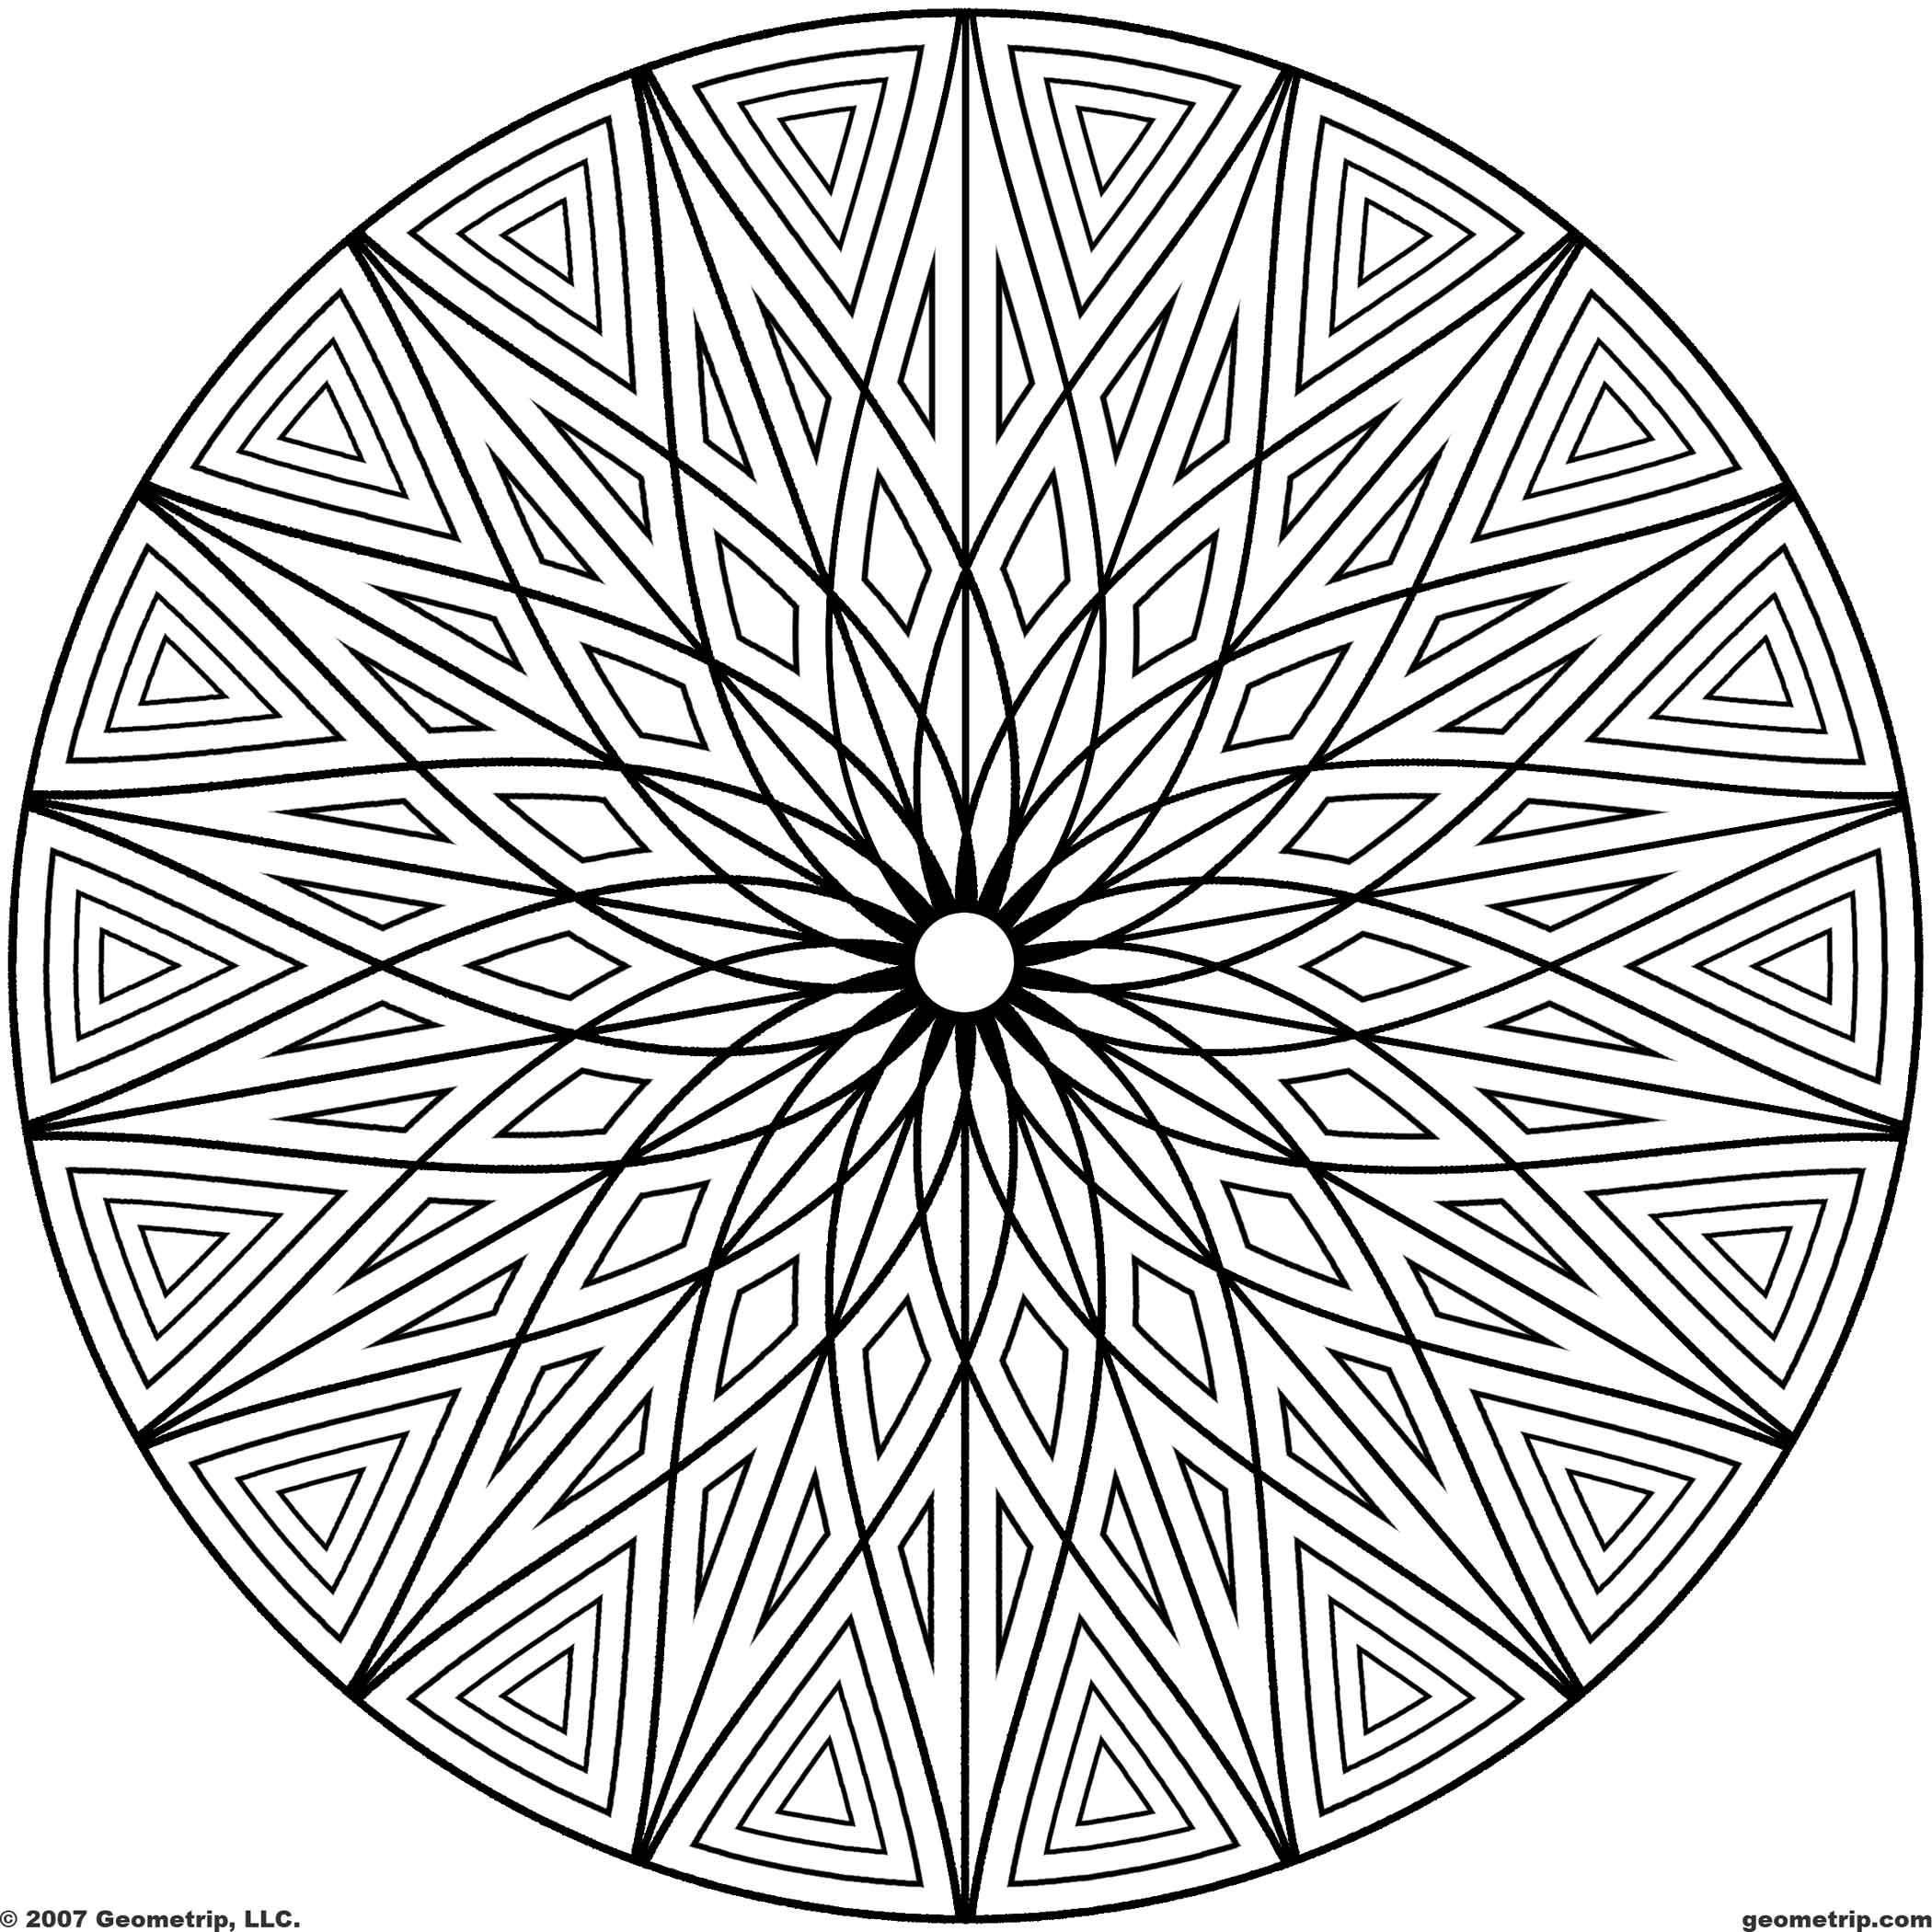 pattern coloring pages for kids pattern coloring pages best coloring pages for kids pages kids coloring pattern for